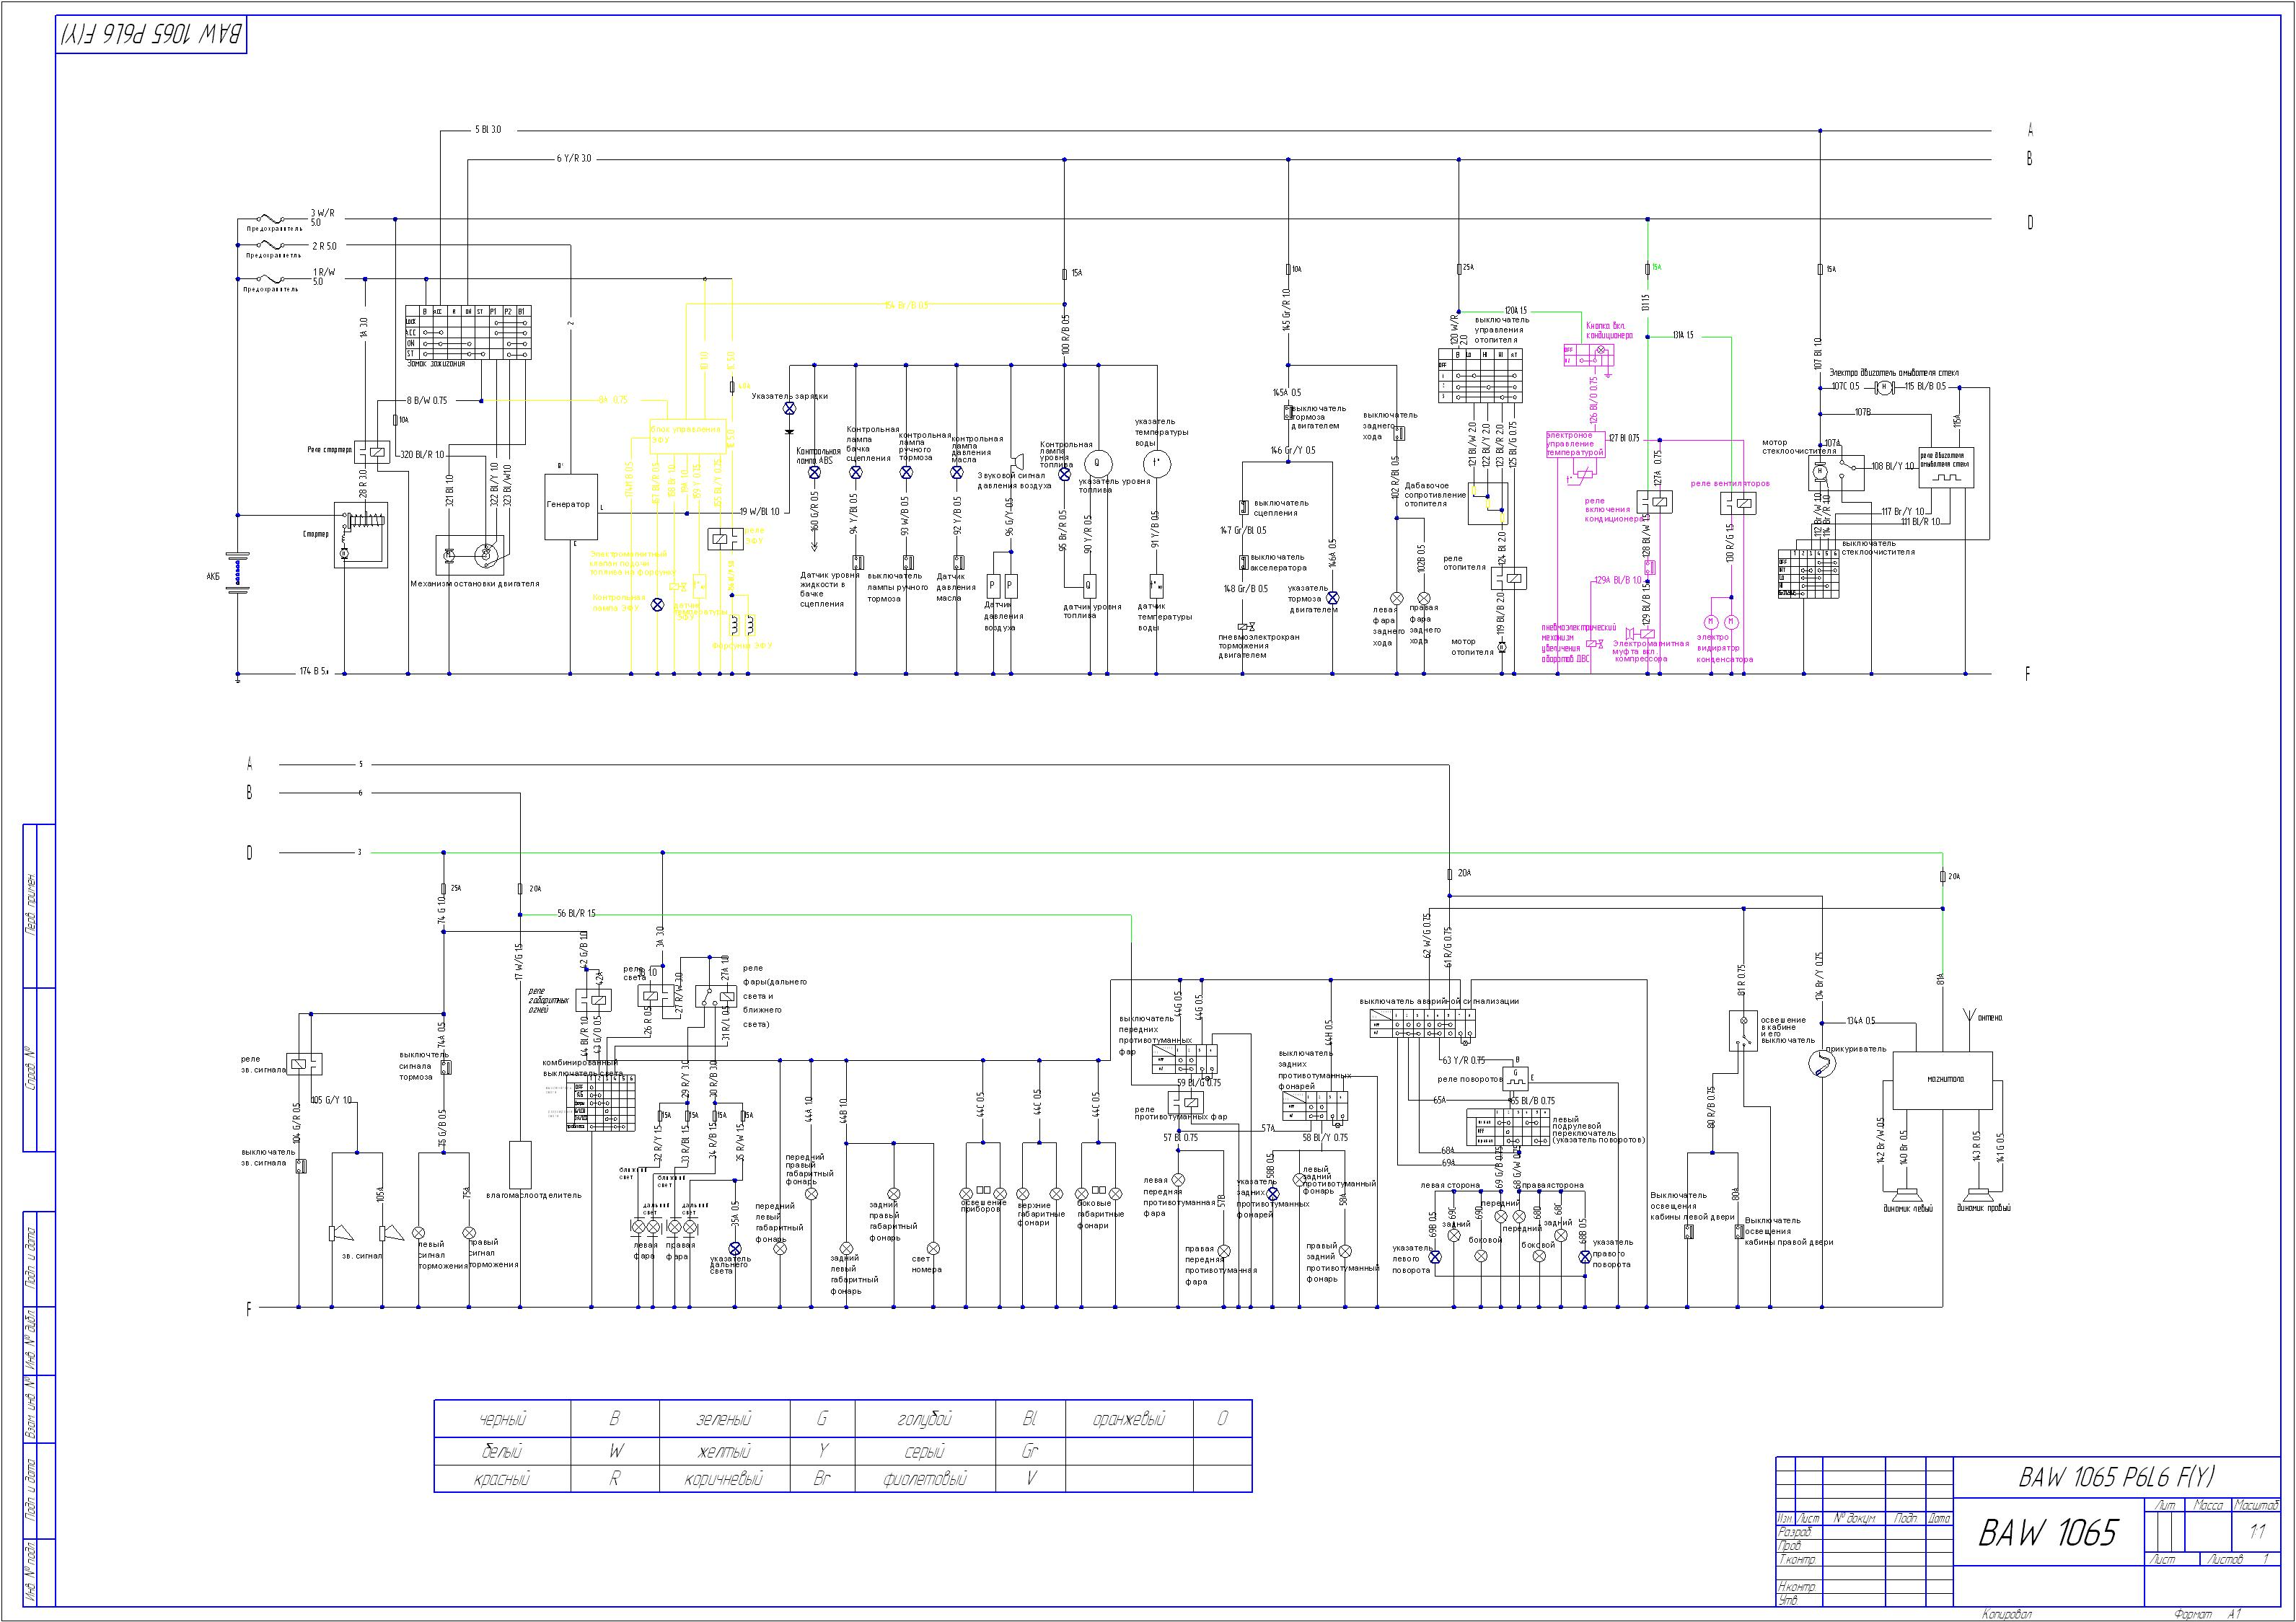 Baw Truck Tractor Forklift Manuals Pdf Marmon Wiring Diagrams Download